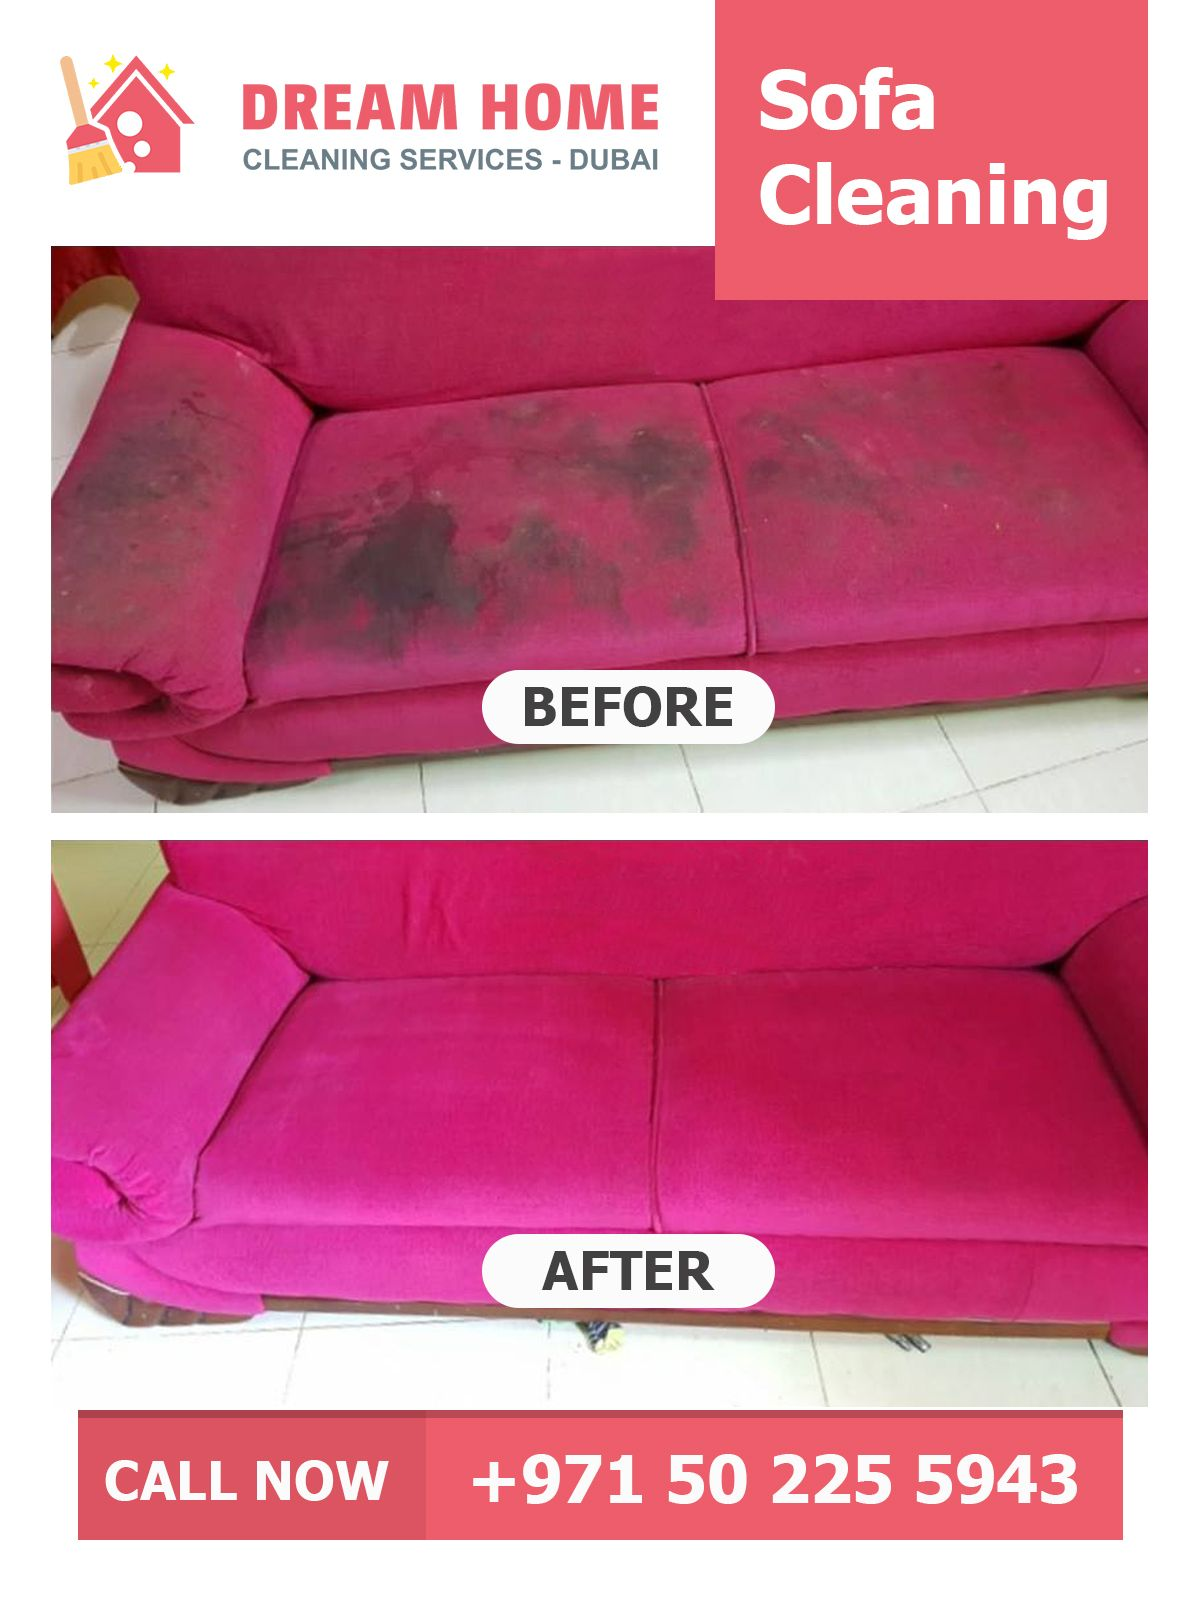 Sofa Cleaning in Dubai Dream Home Cleaning Service provides ...